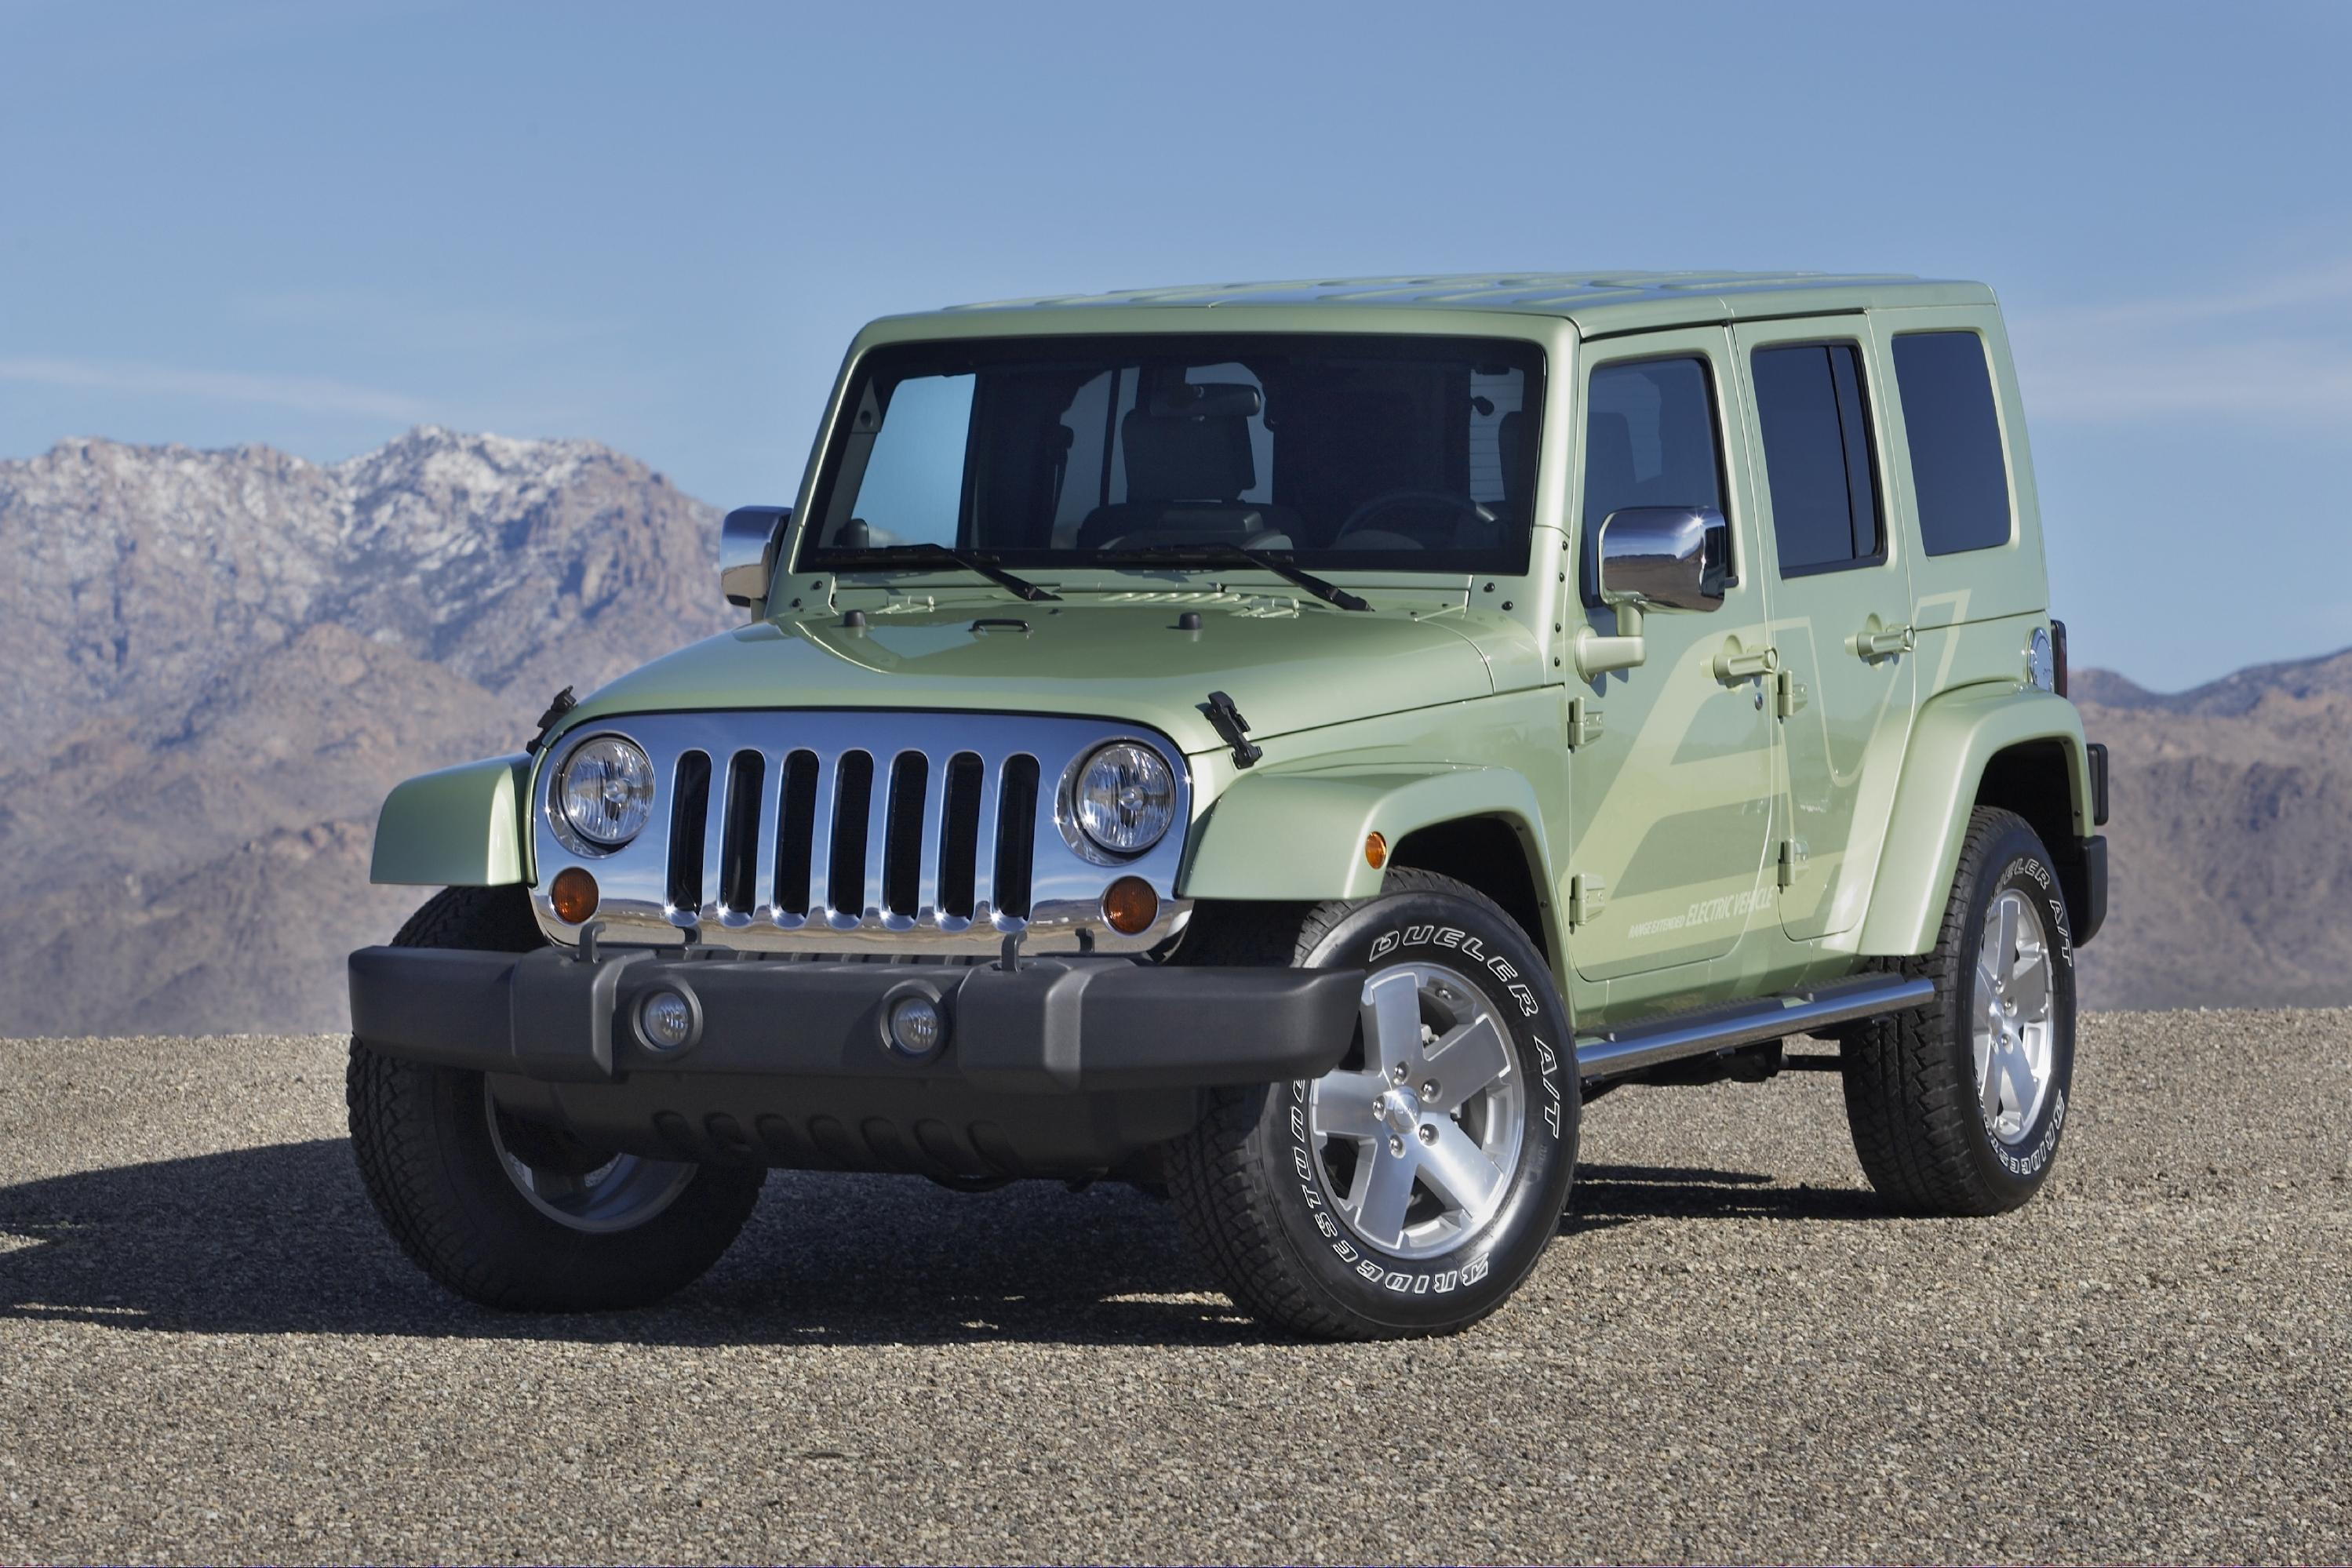 2009 Jeep Wrangler For Sale >> 2009 Jeep Wrangler Unlimited EV | Top Speed